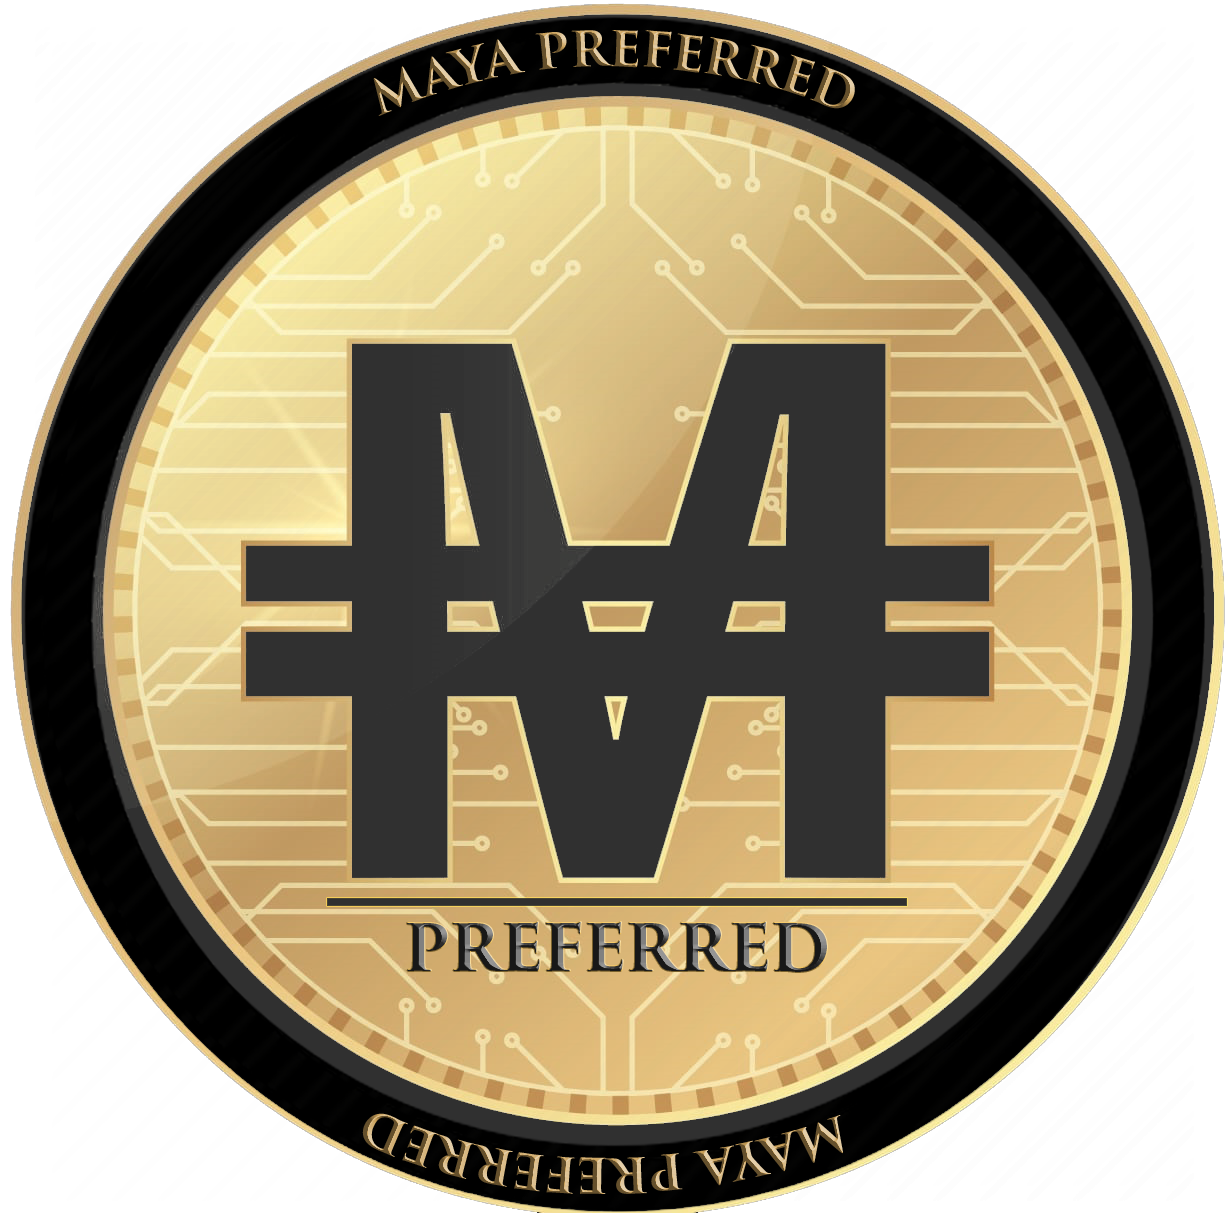 Why buy Maya Preferred 223 (MAPR)? It's backing Bitcoin with Gold and Silver, That's why. 11